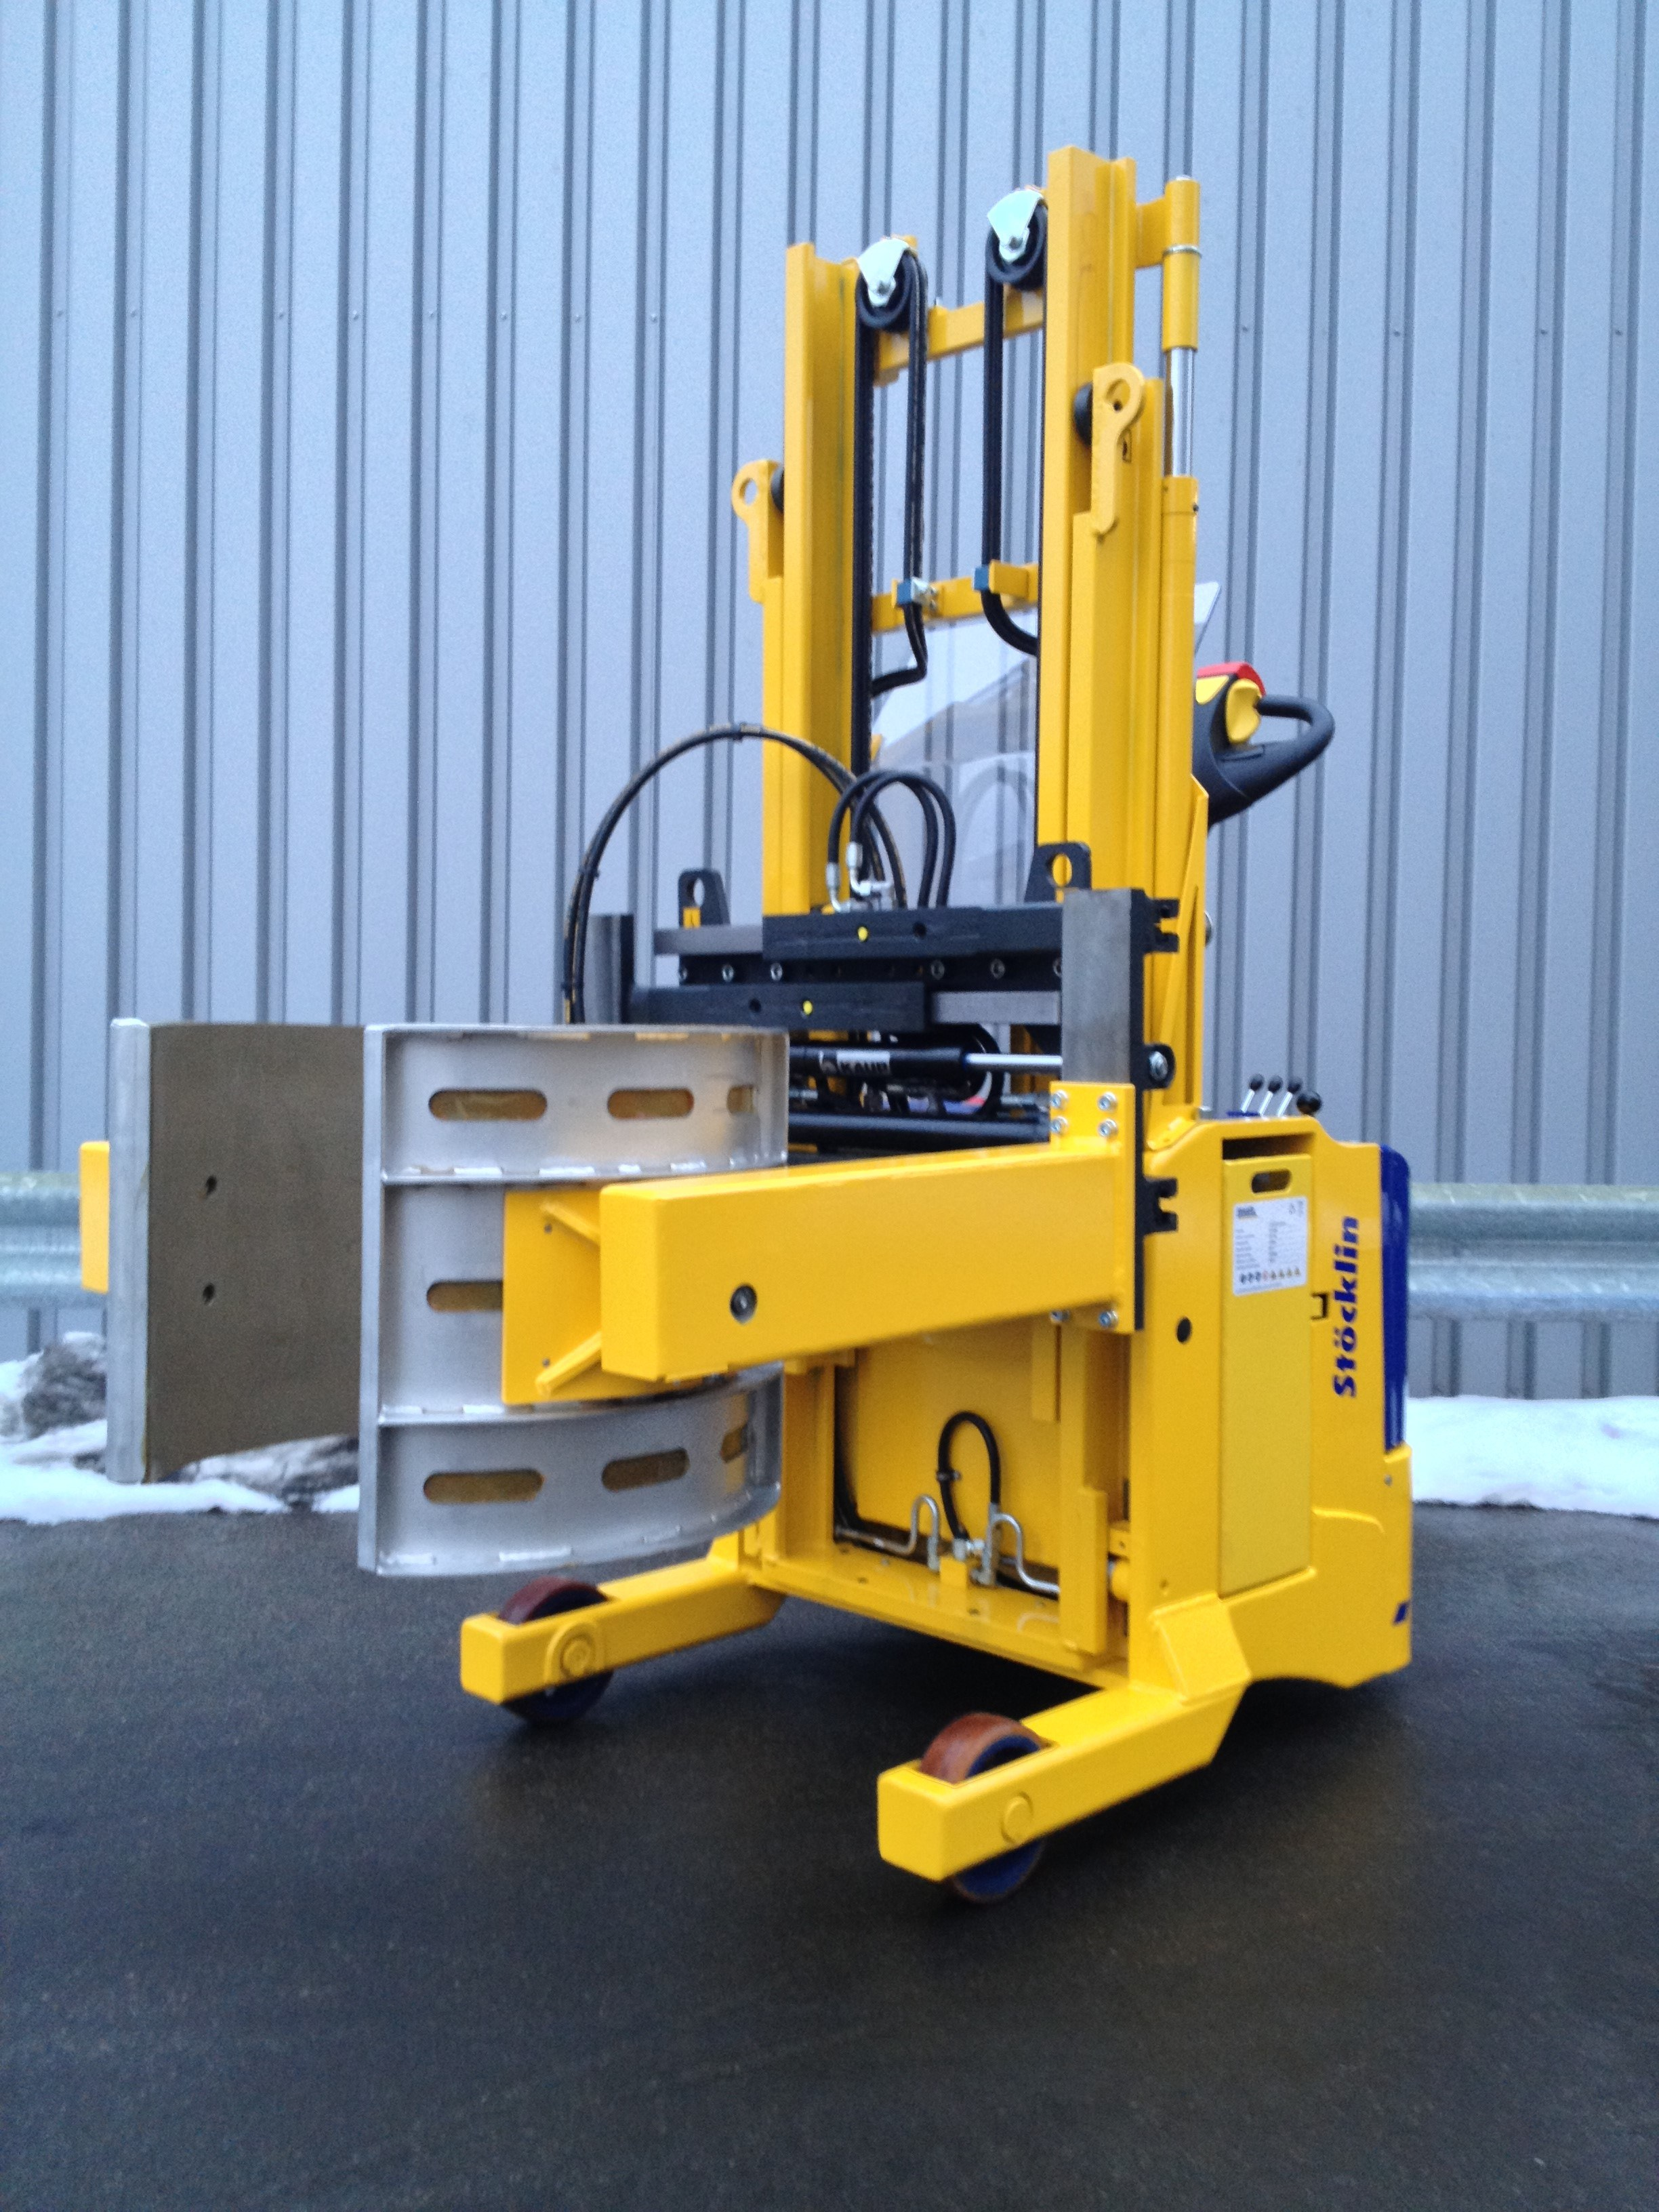 Hydraulic attachment equipment